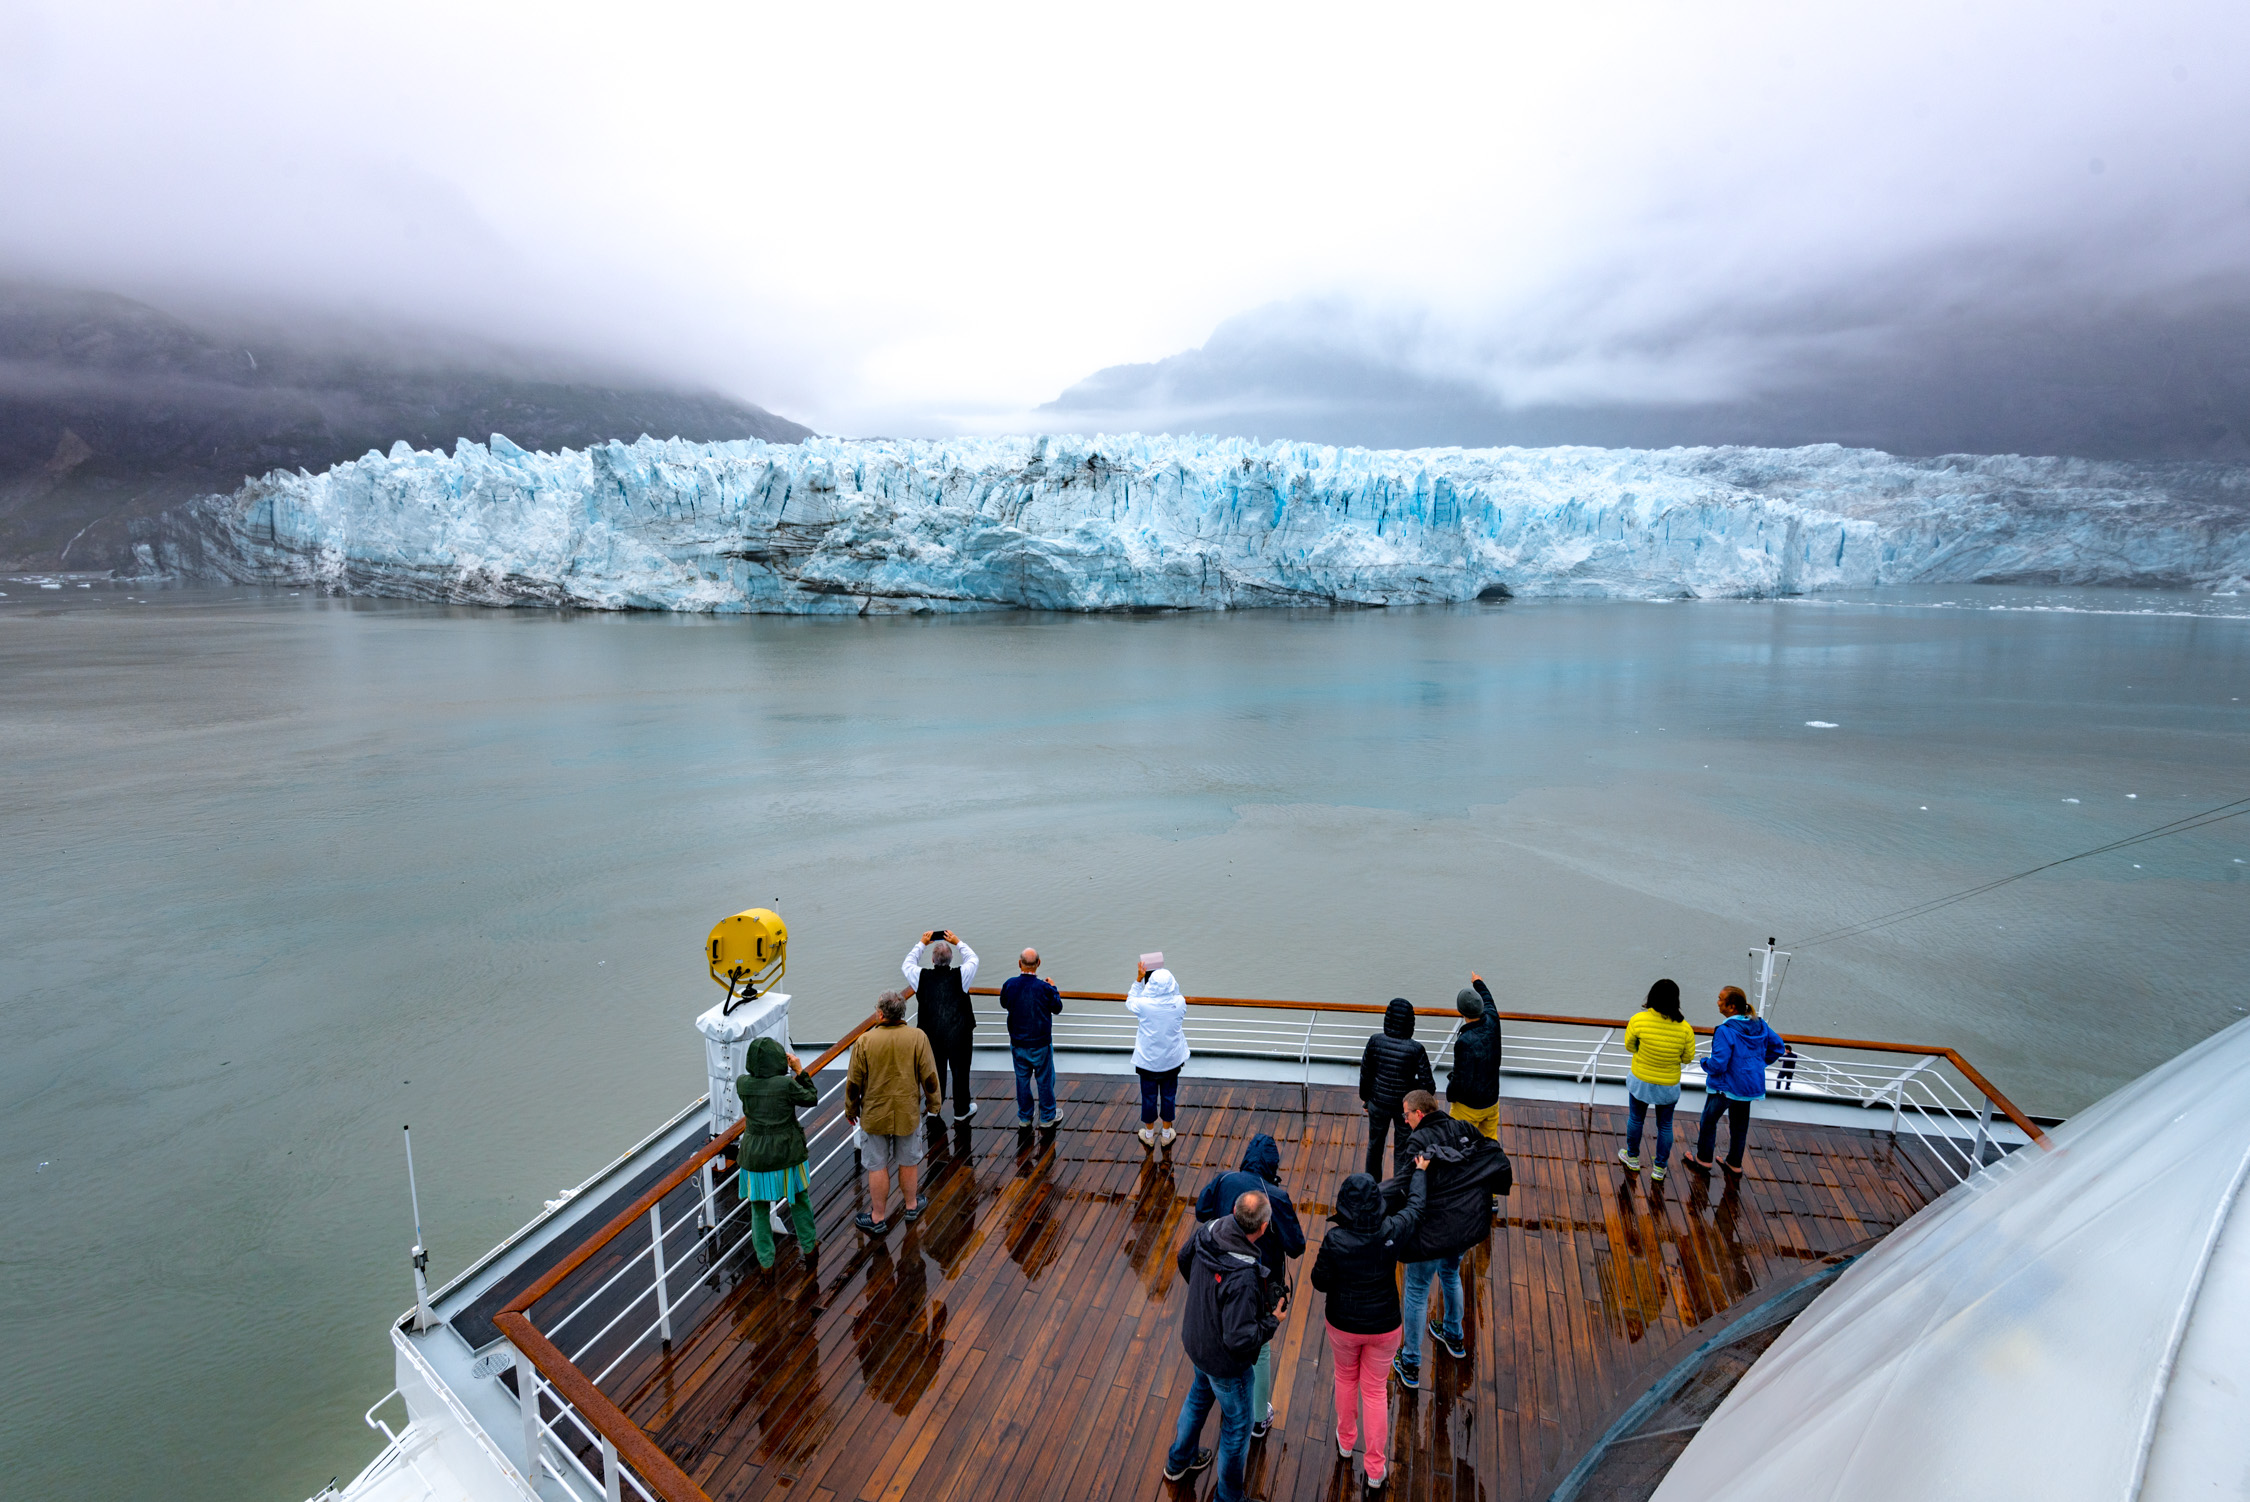 Cruising Glacier Bay, which is only accessible by boat